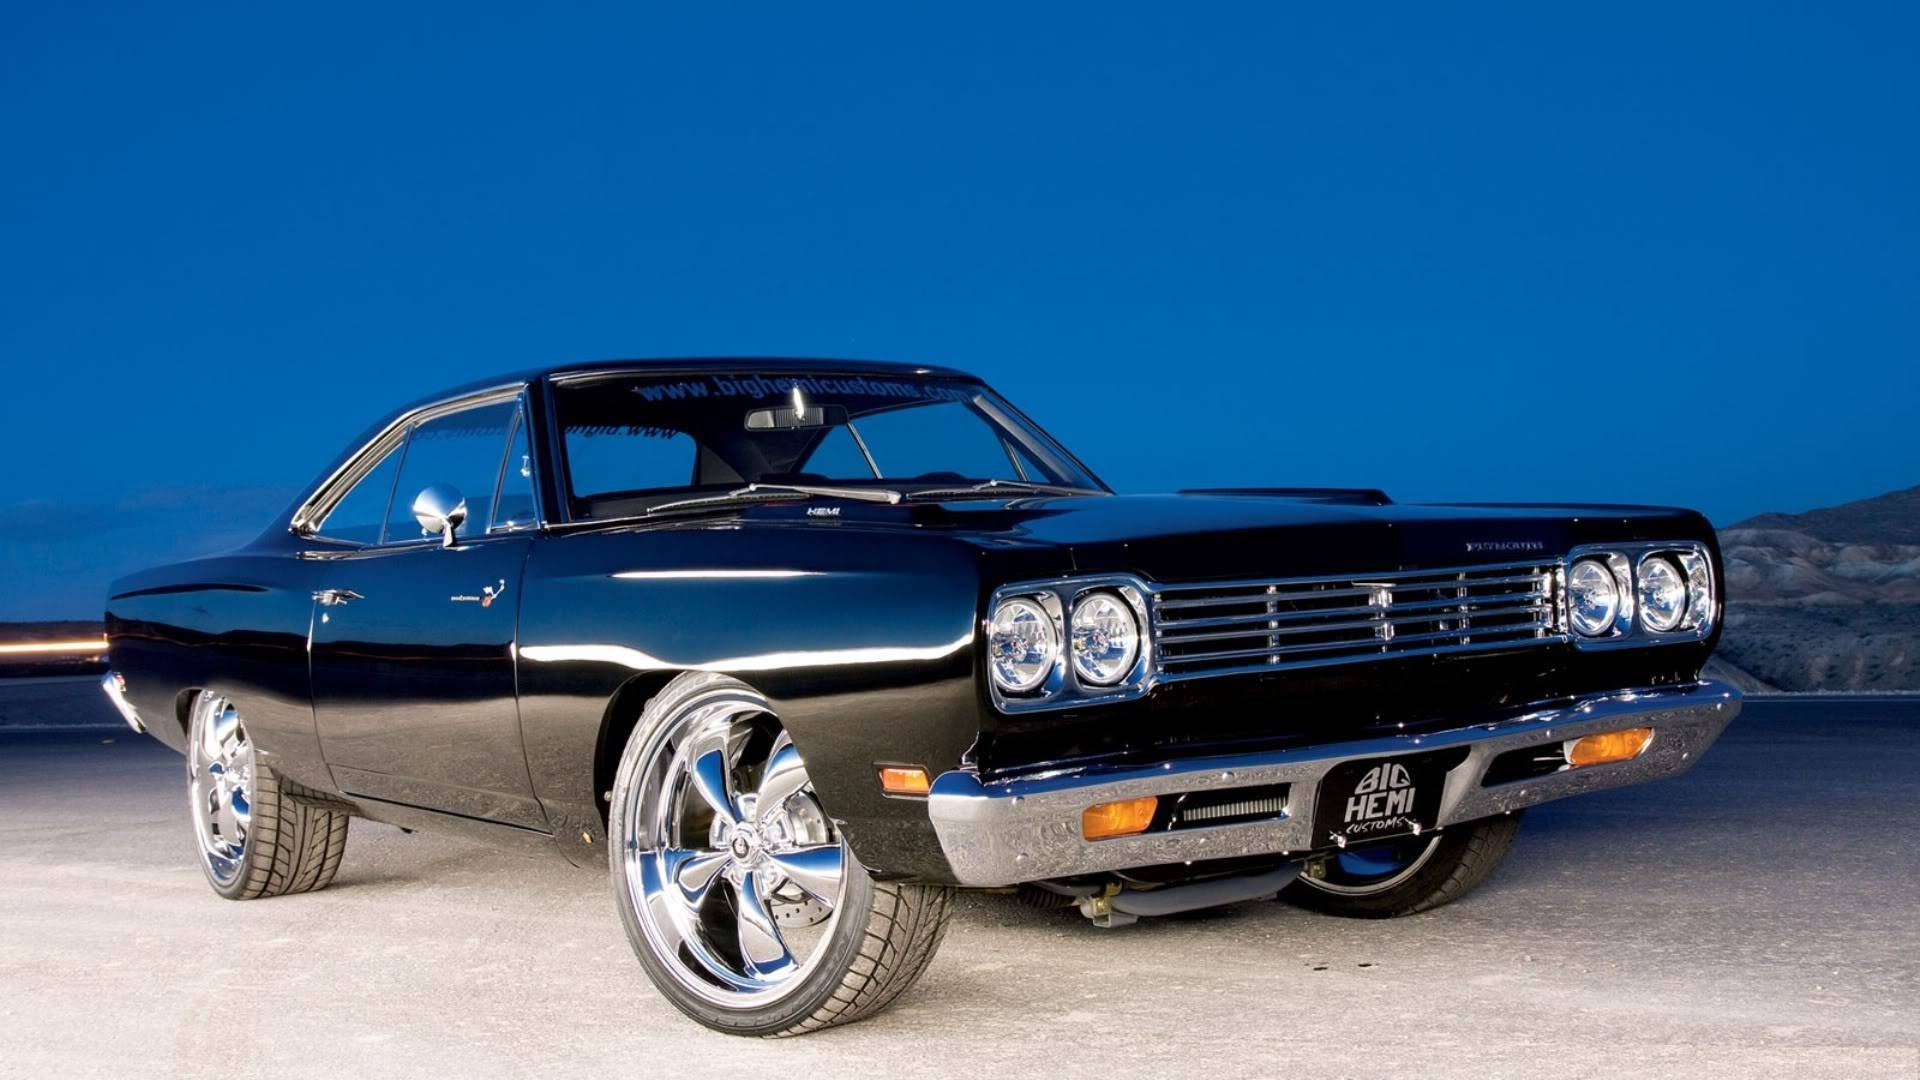 muscle-cars-Muscle-Cars-1920×1080-wallpaper-wpc9207376